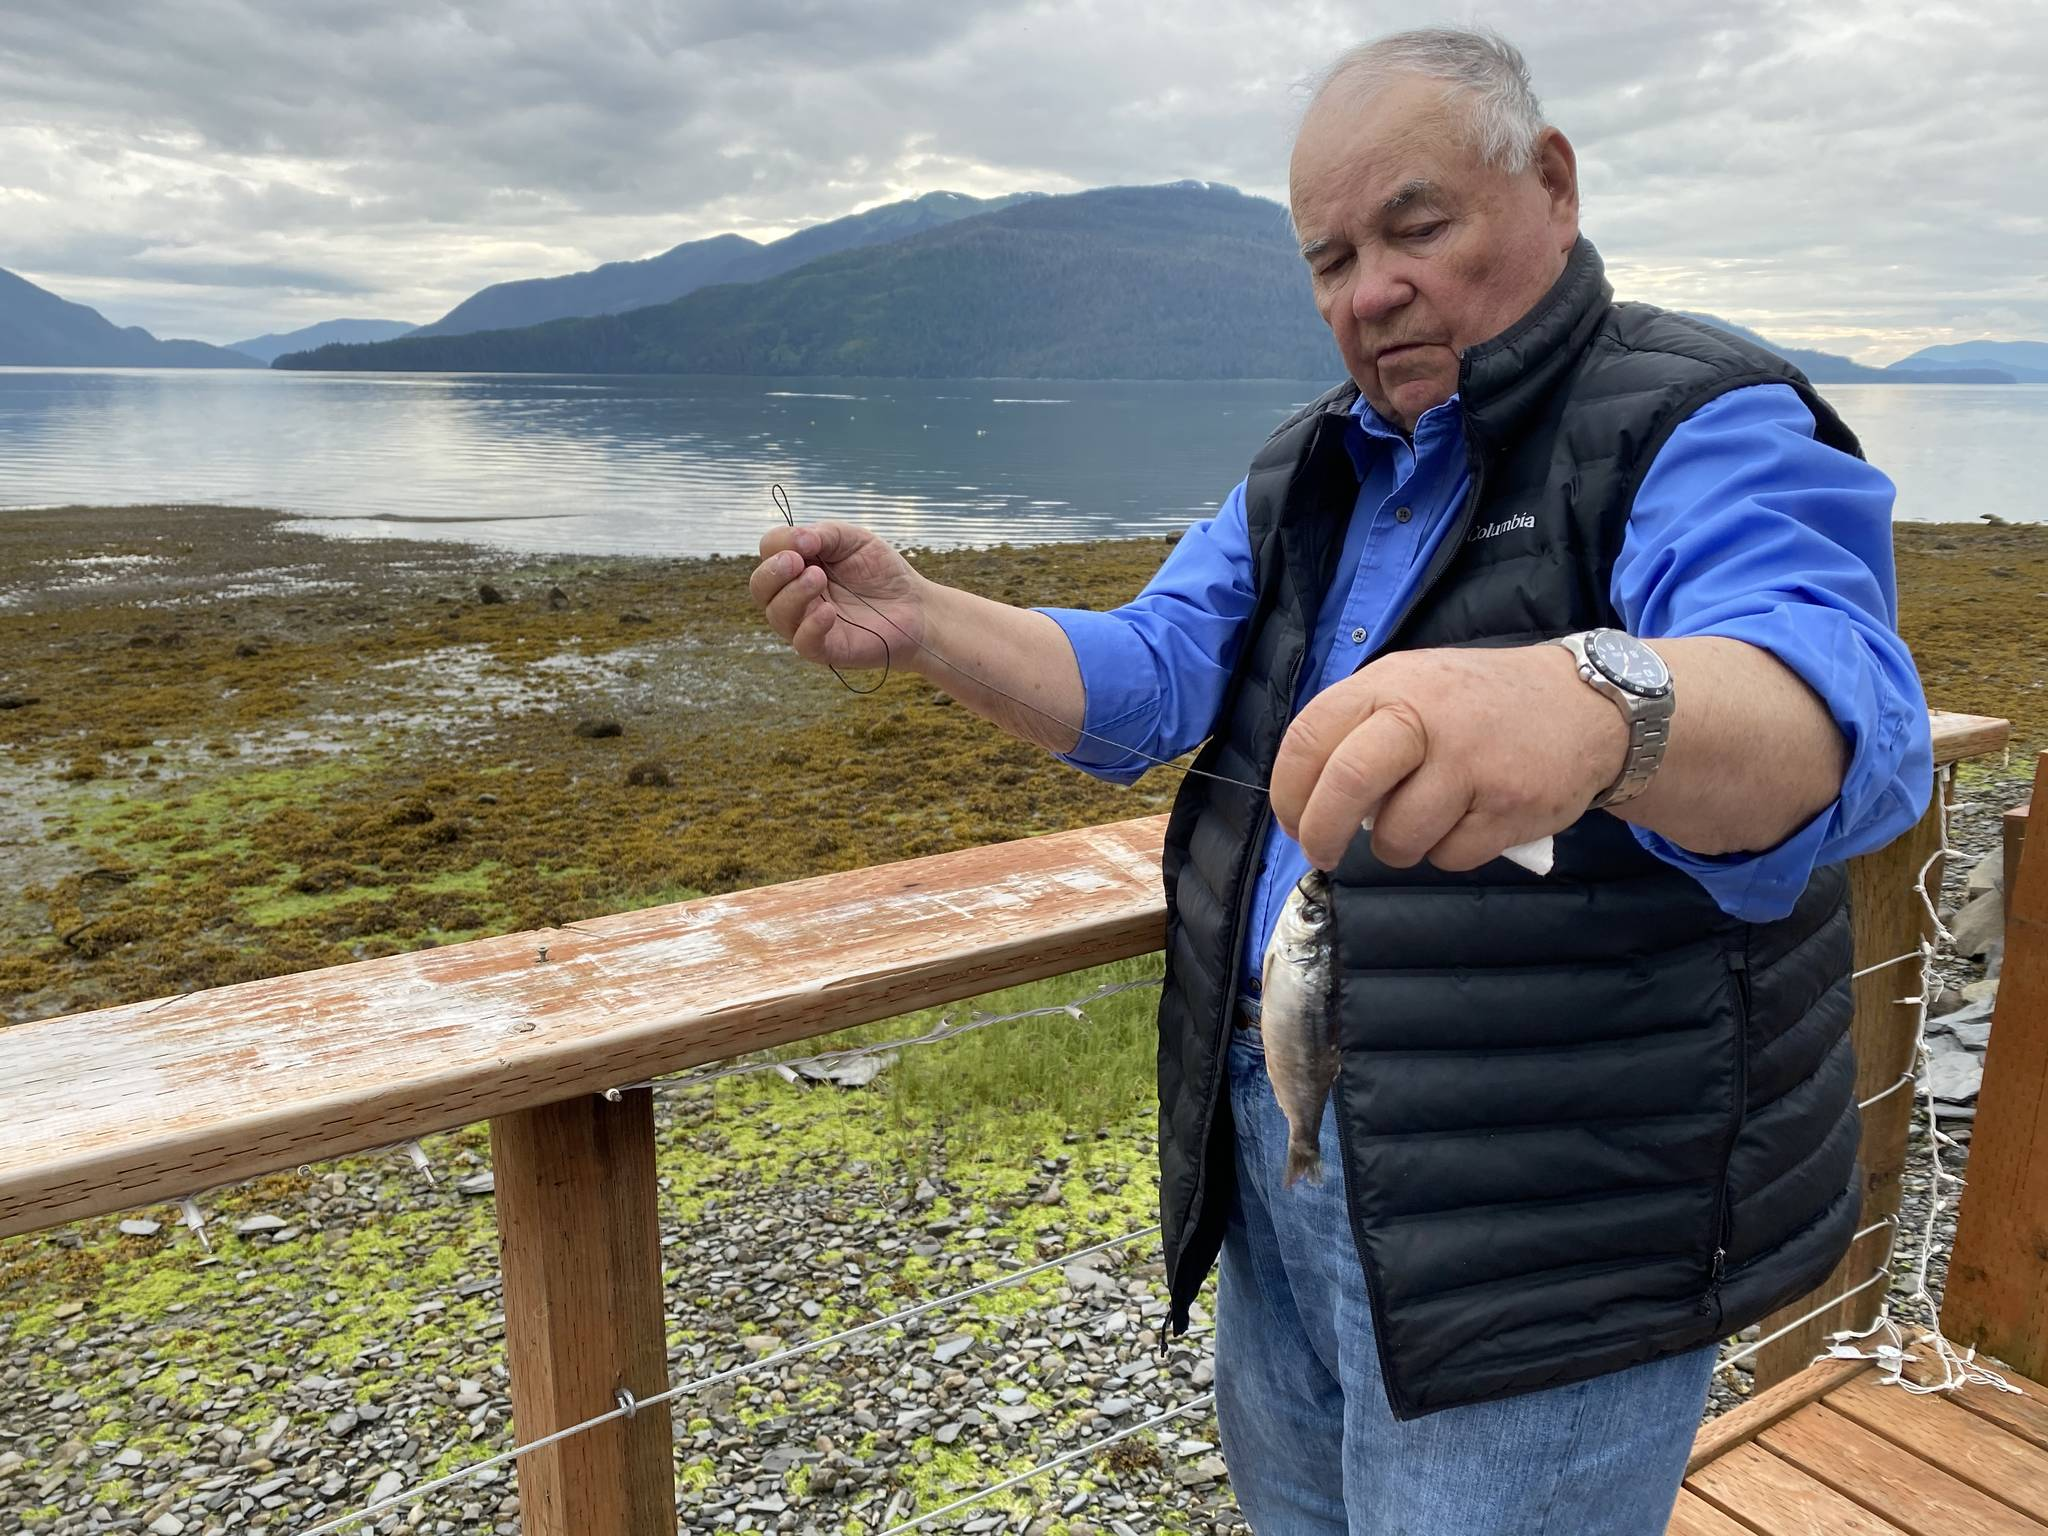 Mickey Prescott demonstrates how to choke a herring. He says choking a herring is a troller term used in the old days. He learned this technique from his dad. (Vivian Faith Prescott | For the Capital City Weekly)